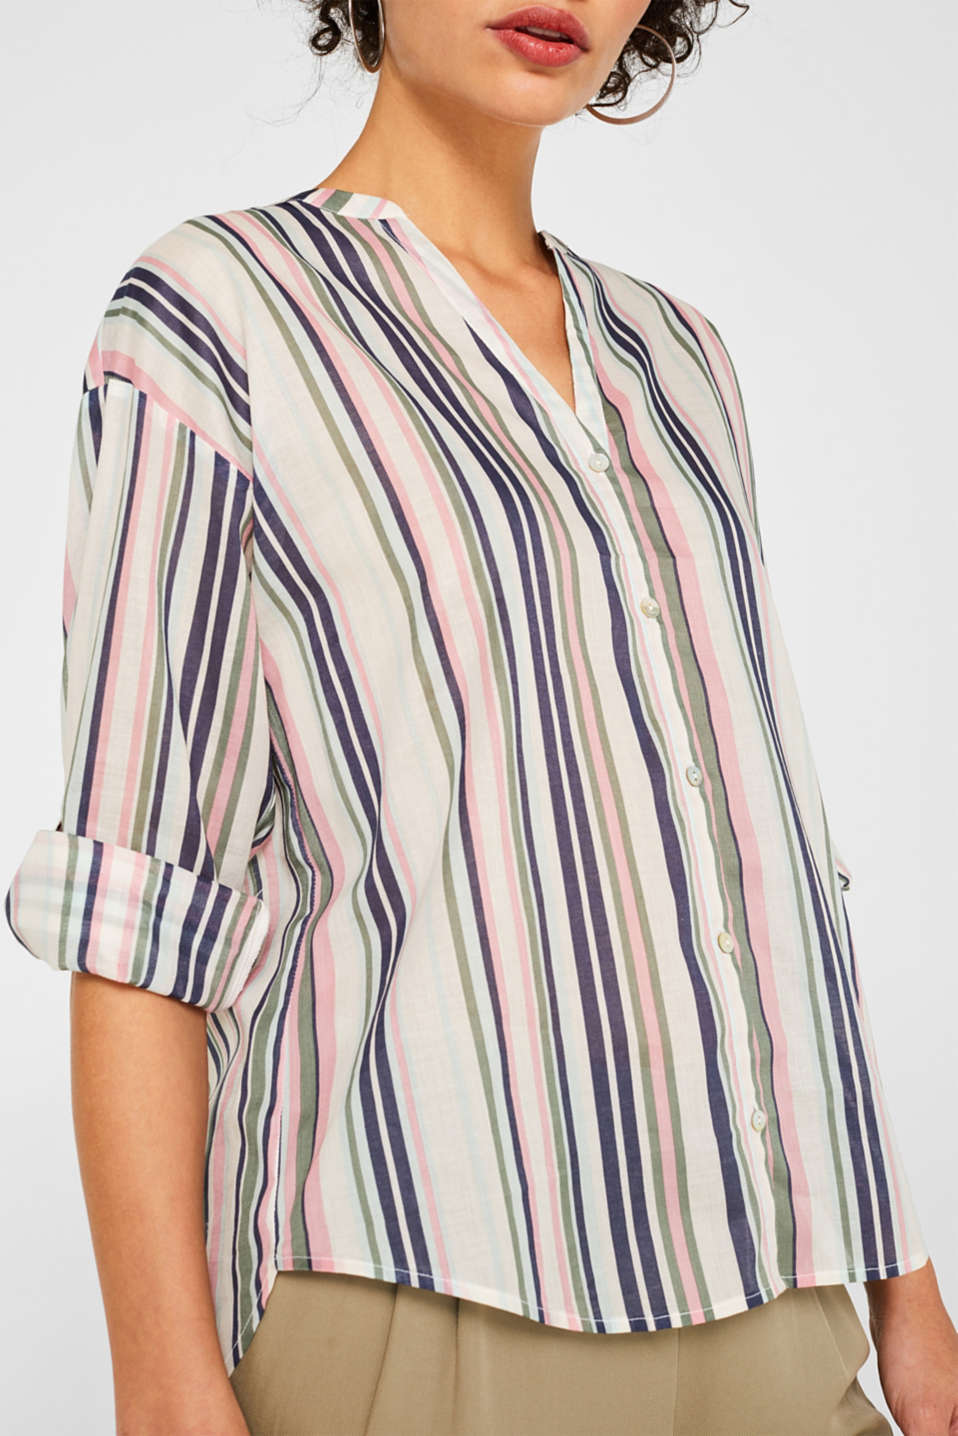 Printed blouse with turn-up sleeves, 100% cotton, OFF WHITE, detail image number 2